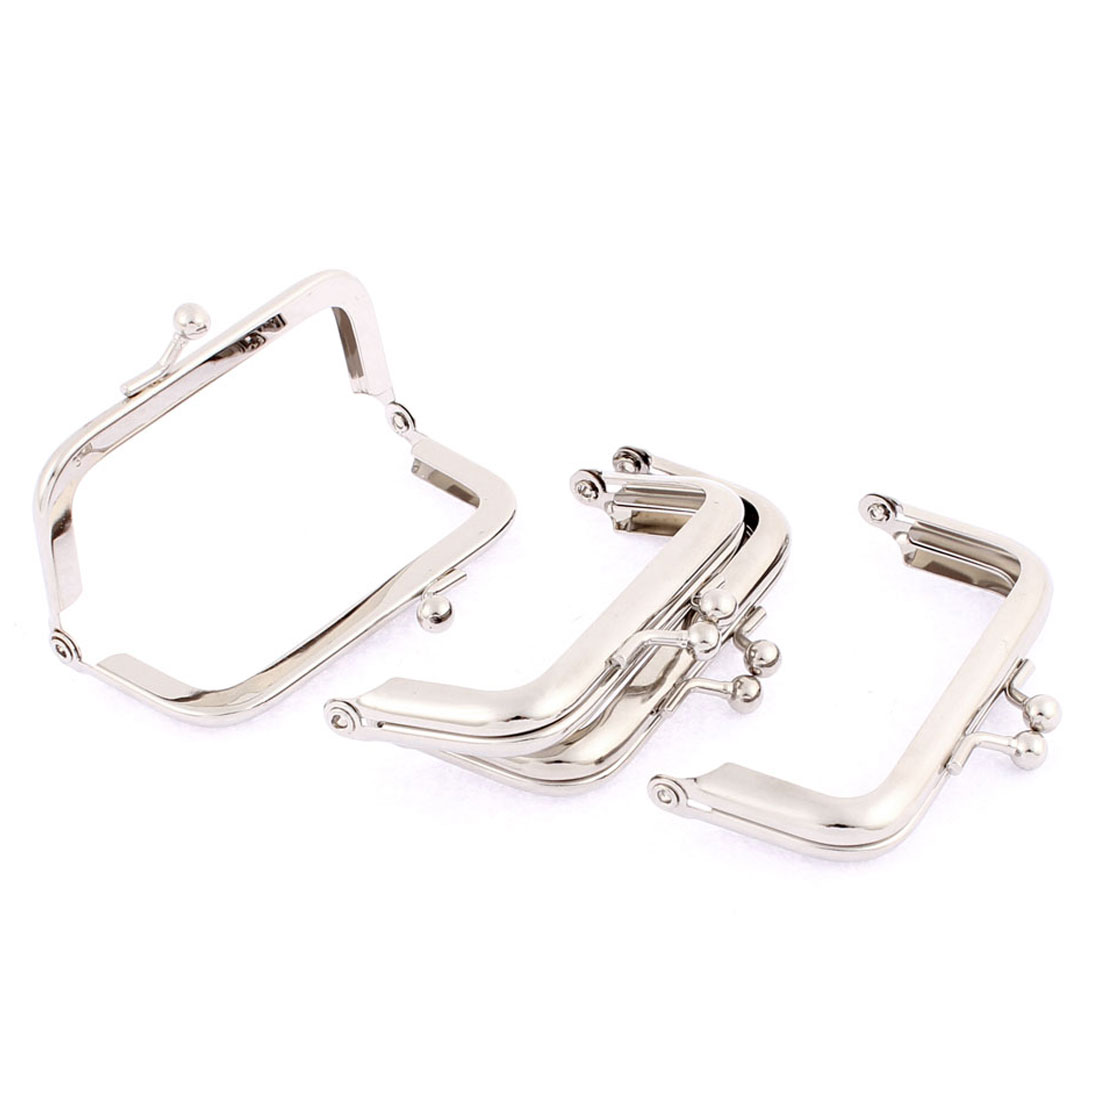 "Purse Handbag Arch Shape Kisslock Clasp Frame 3"" Length 4Pcs"